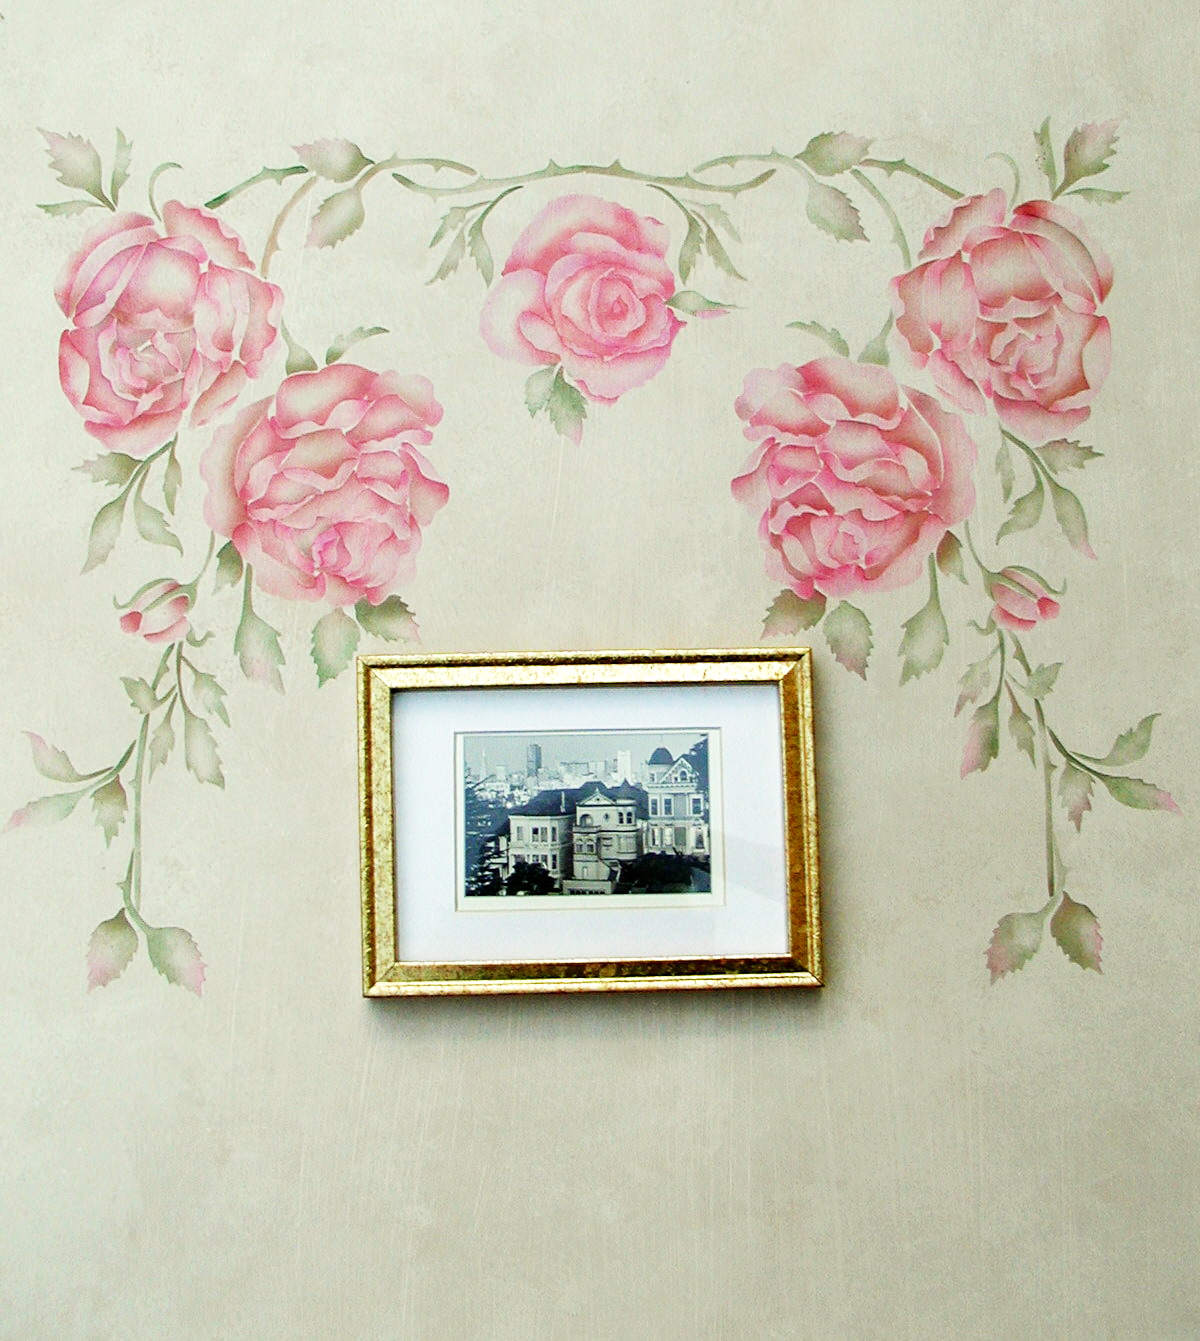 Rose wall stencil image collections home wall decoration ideas rose wall stencil amipublicfo Image collections